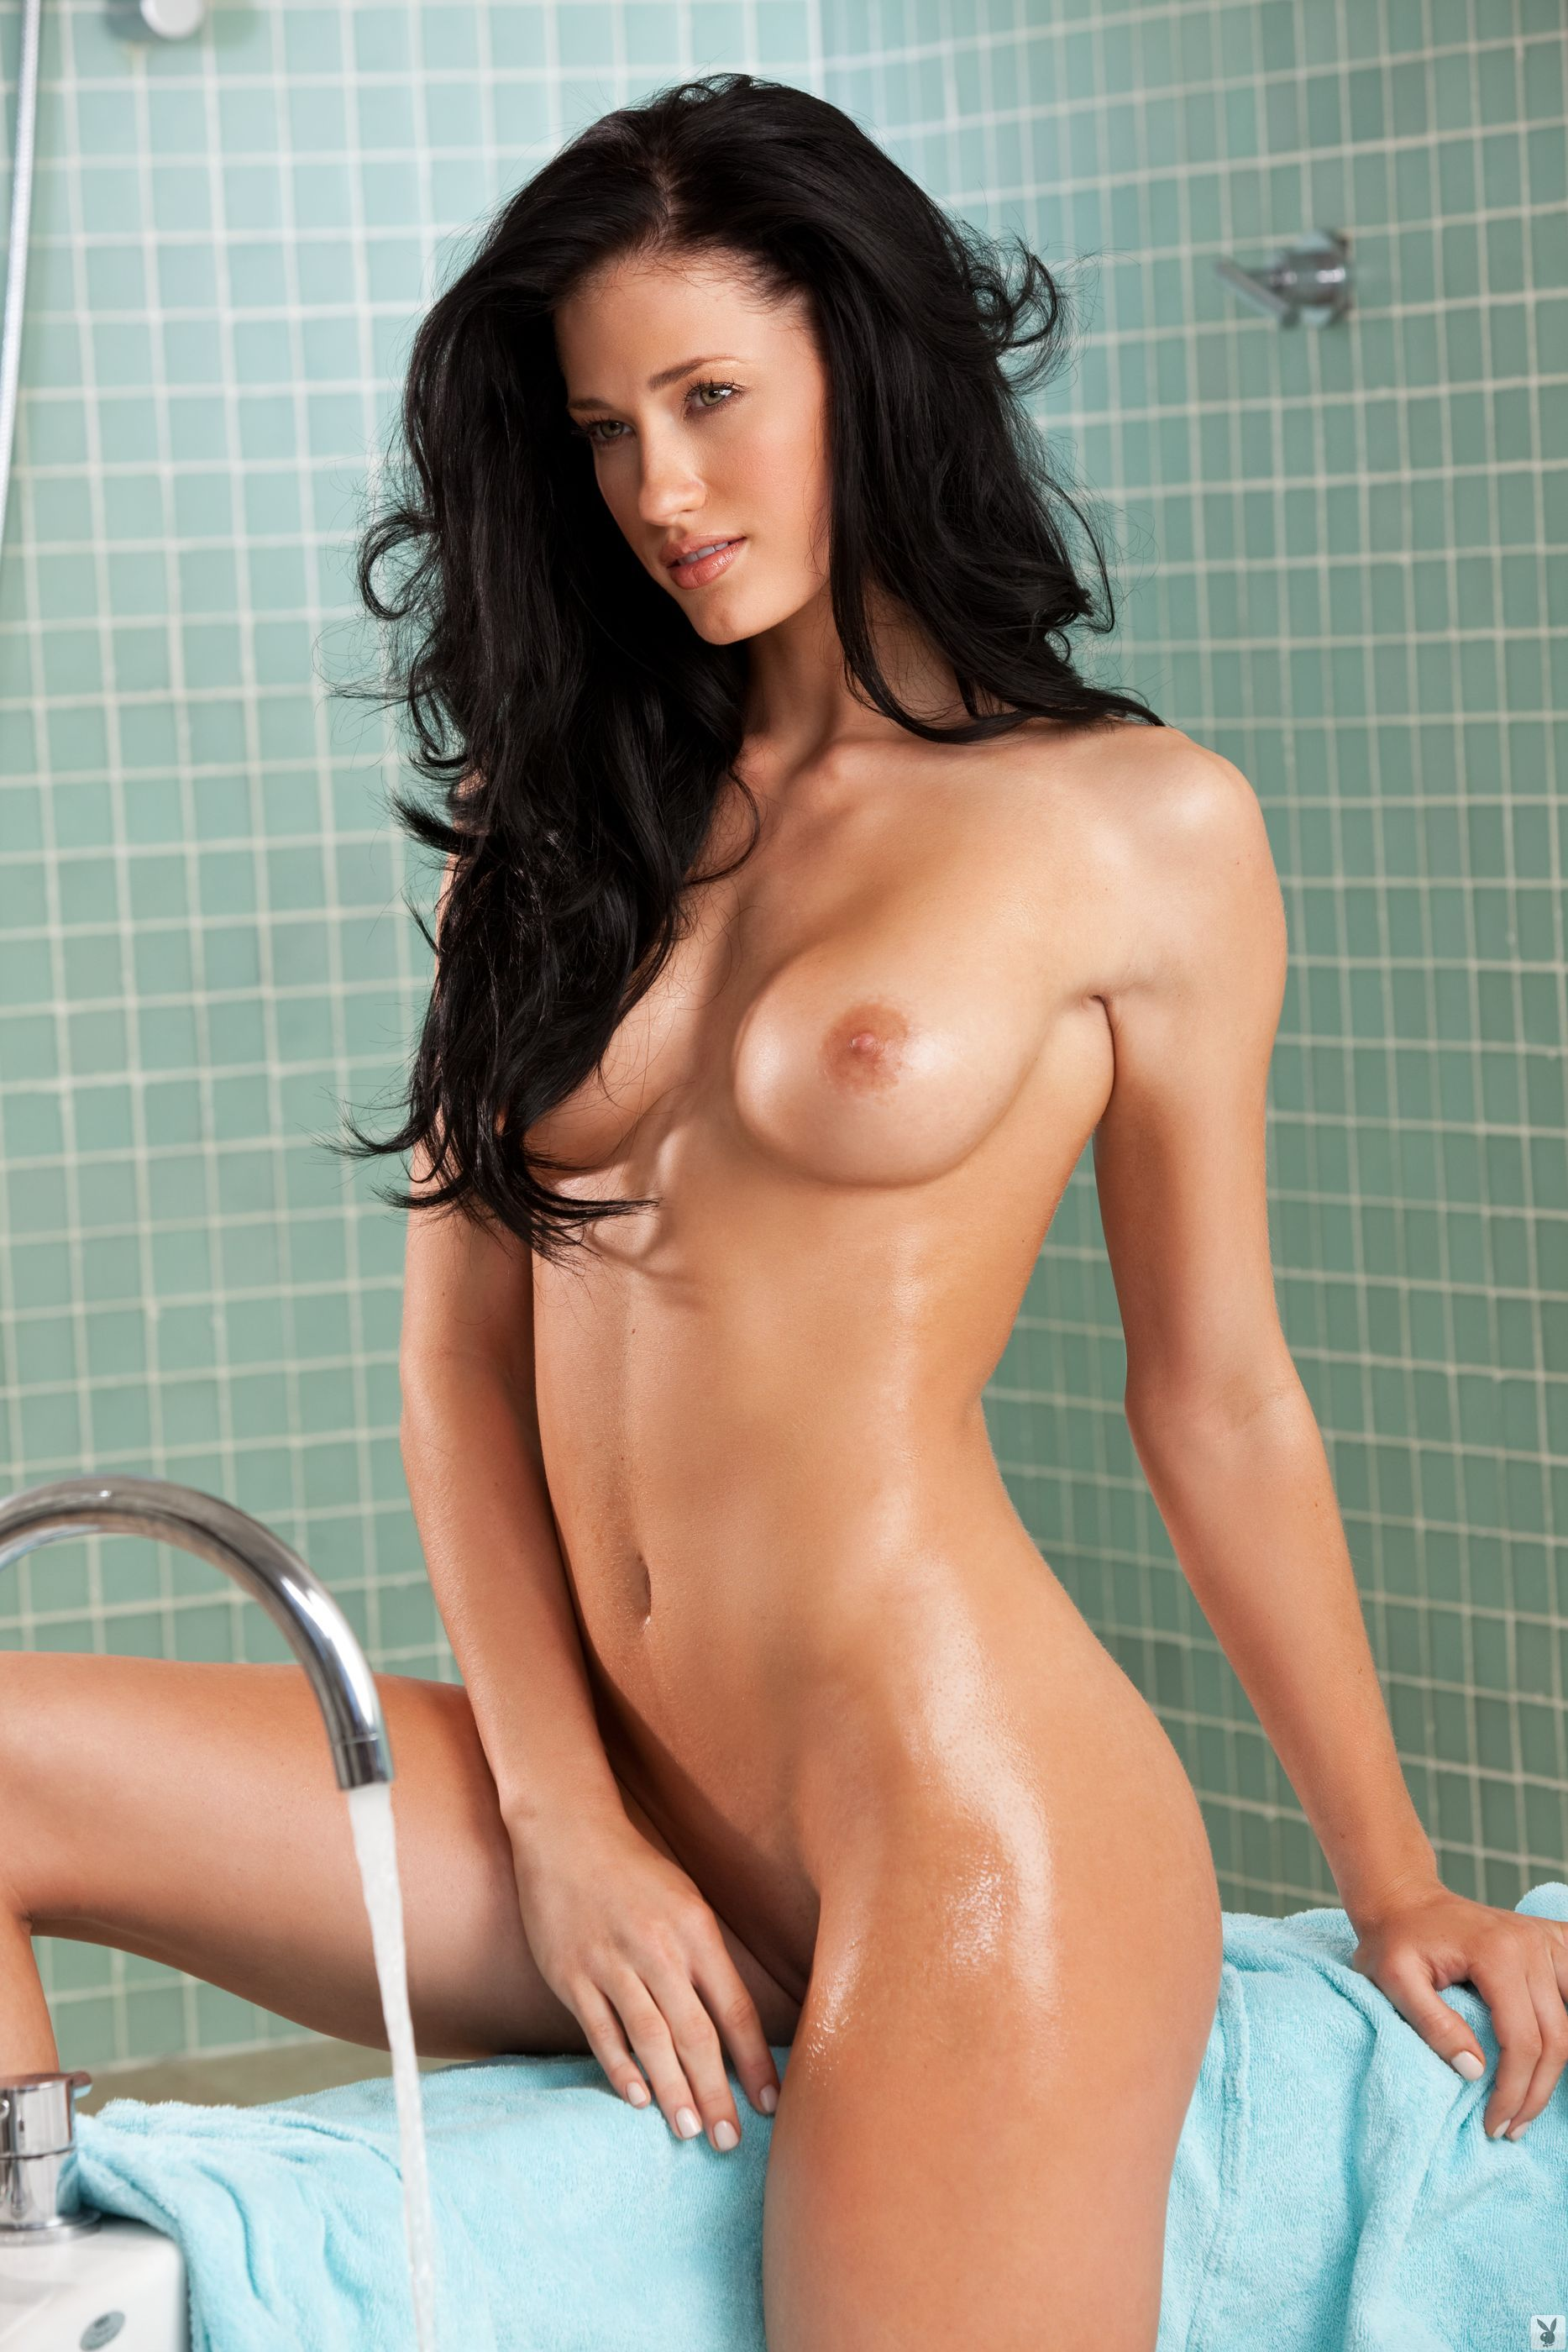 ashton-winters-brunette-nude-bathroom-playboy-18